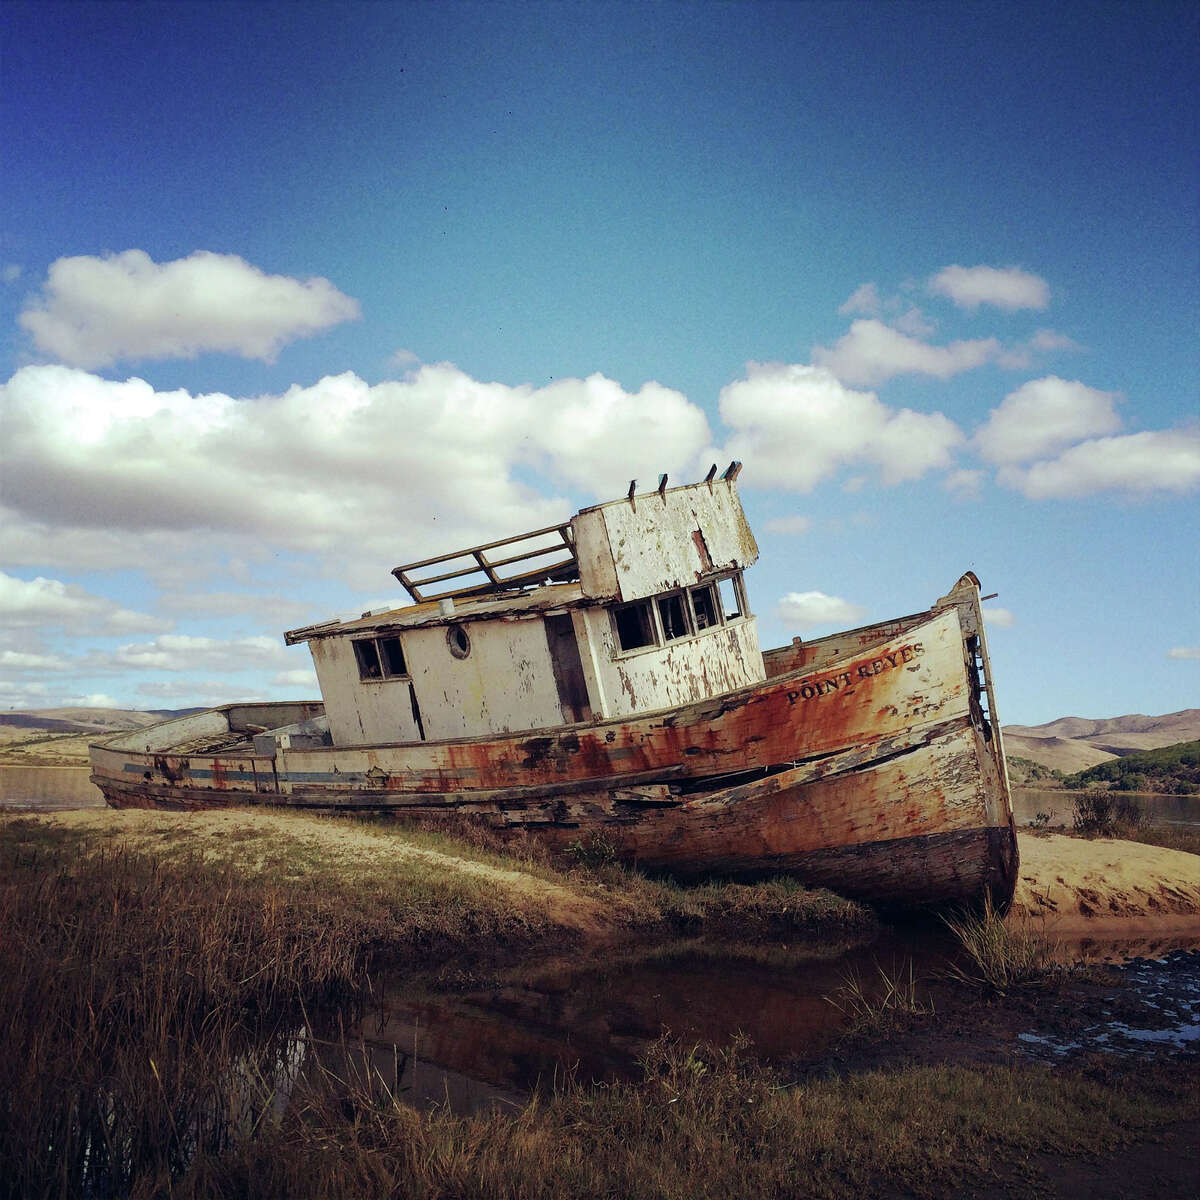 An abandoned boat in the Marin County, California town of Inverness in 2014.